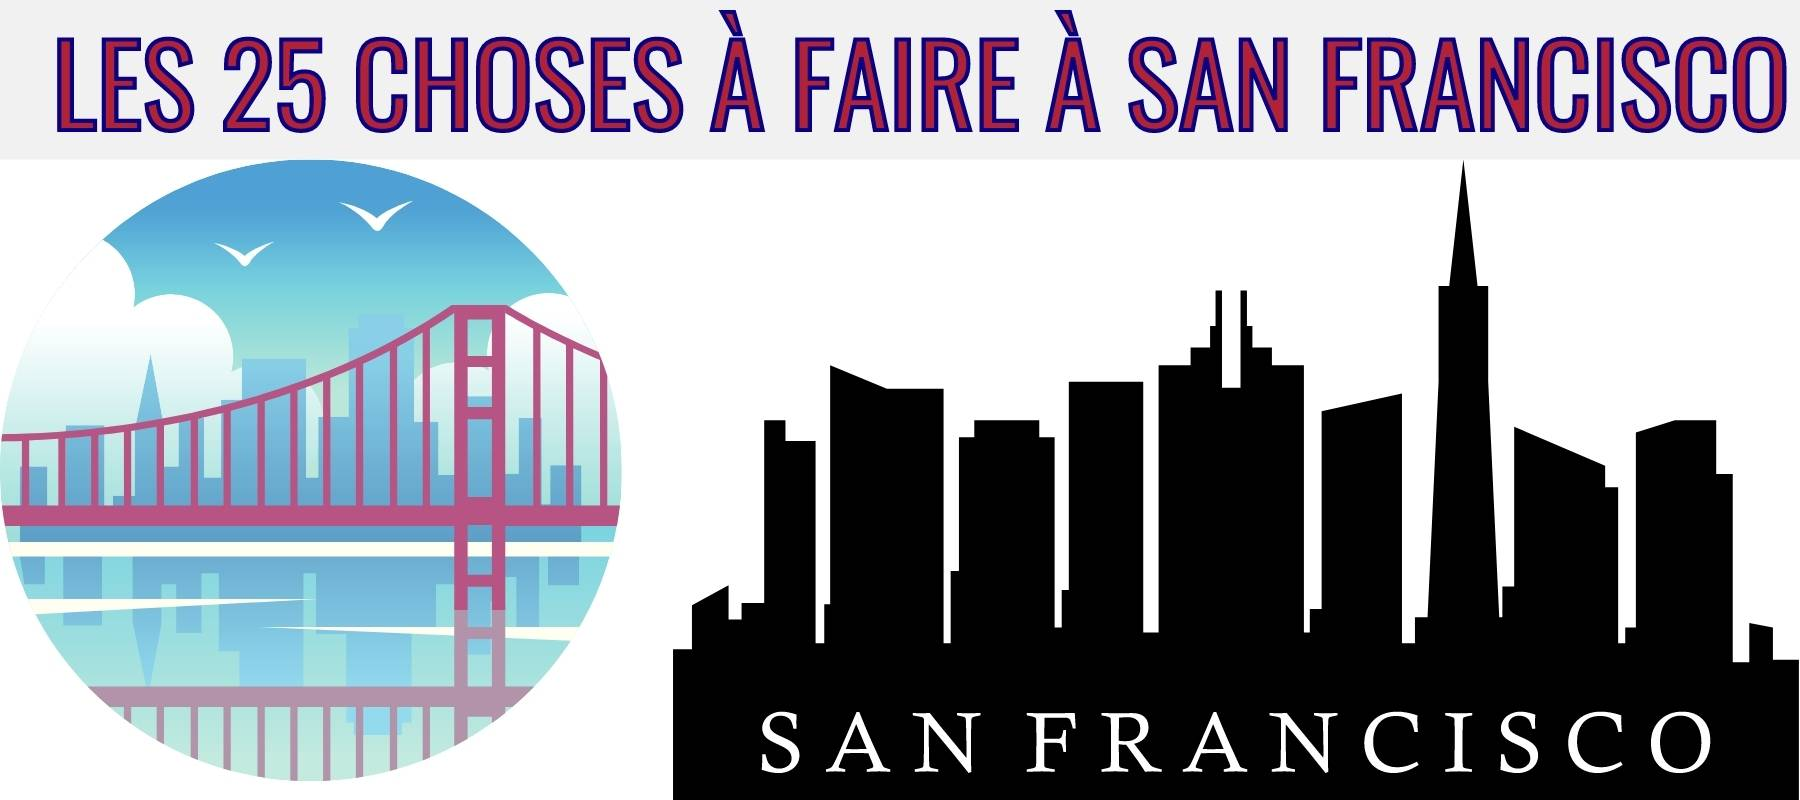 Les 25 Choses à faire à San Francisco